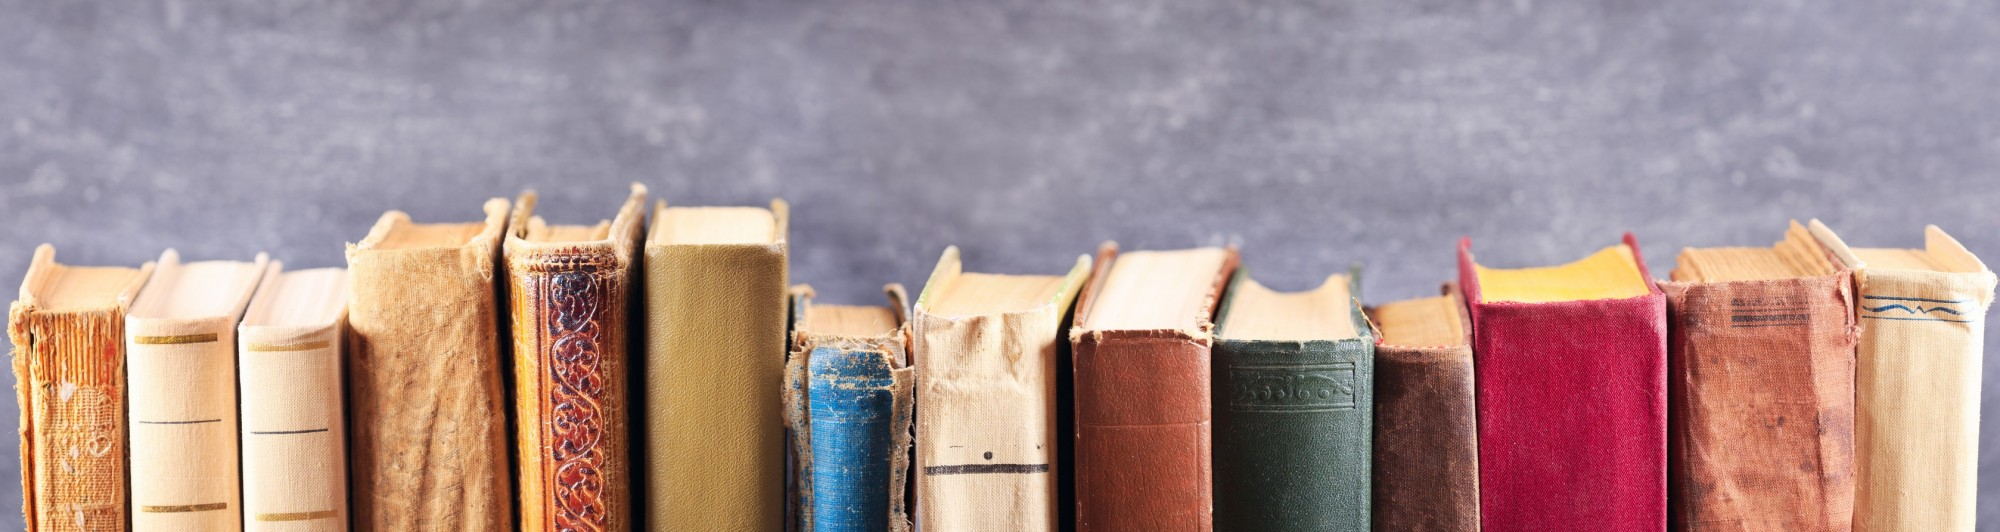 A close up image of old, worn books lined up with their spines facing out